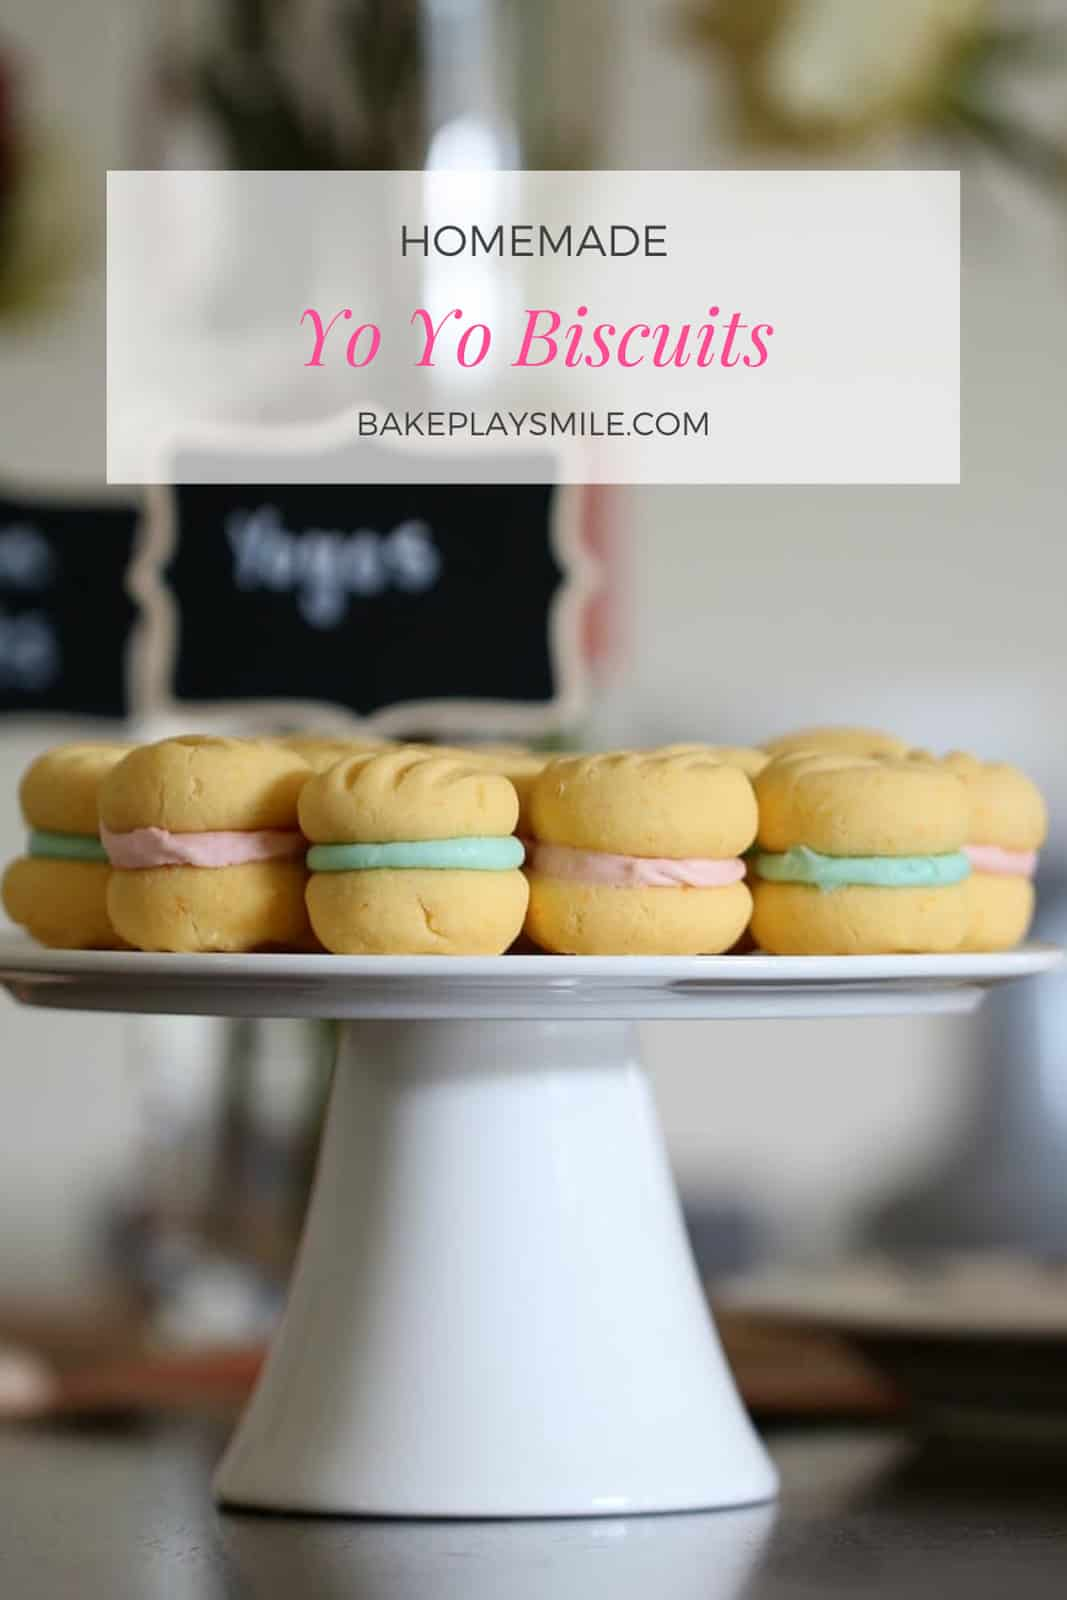 A white cake stand with yo yo biscuits that have pale pink and blue fillings.